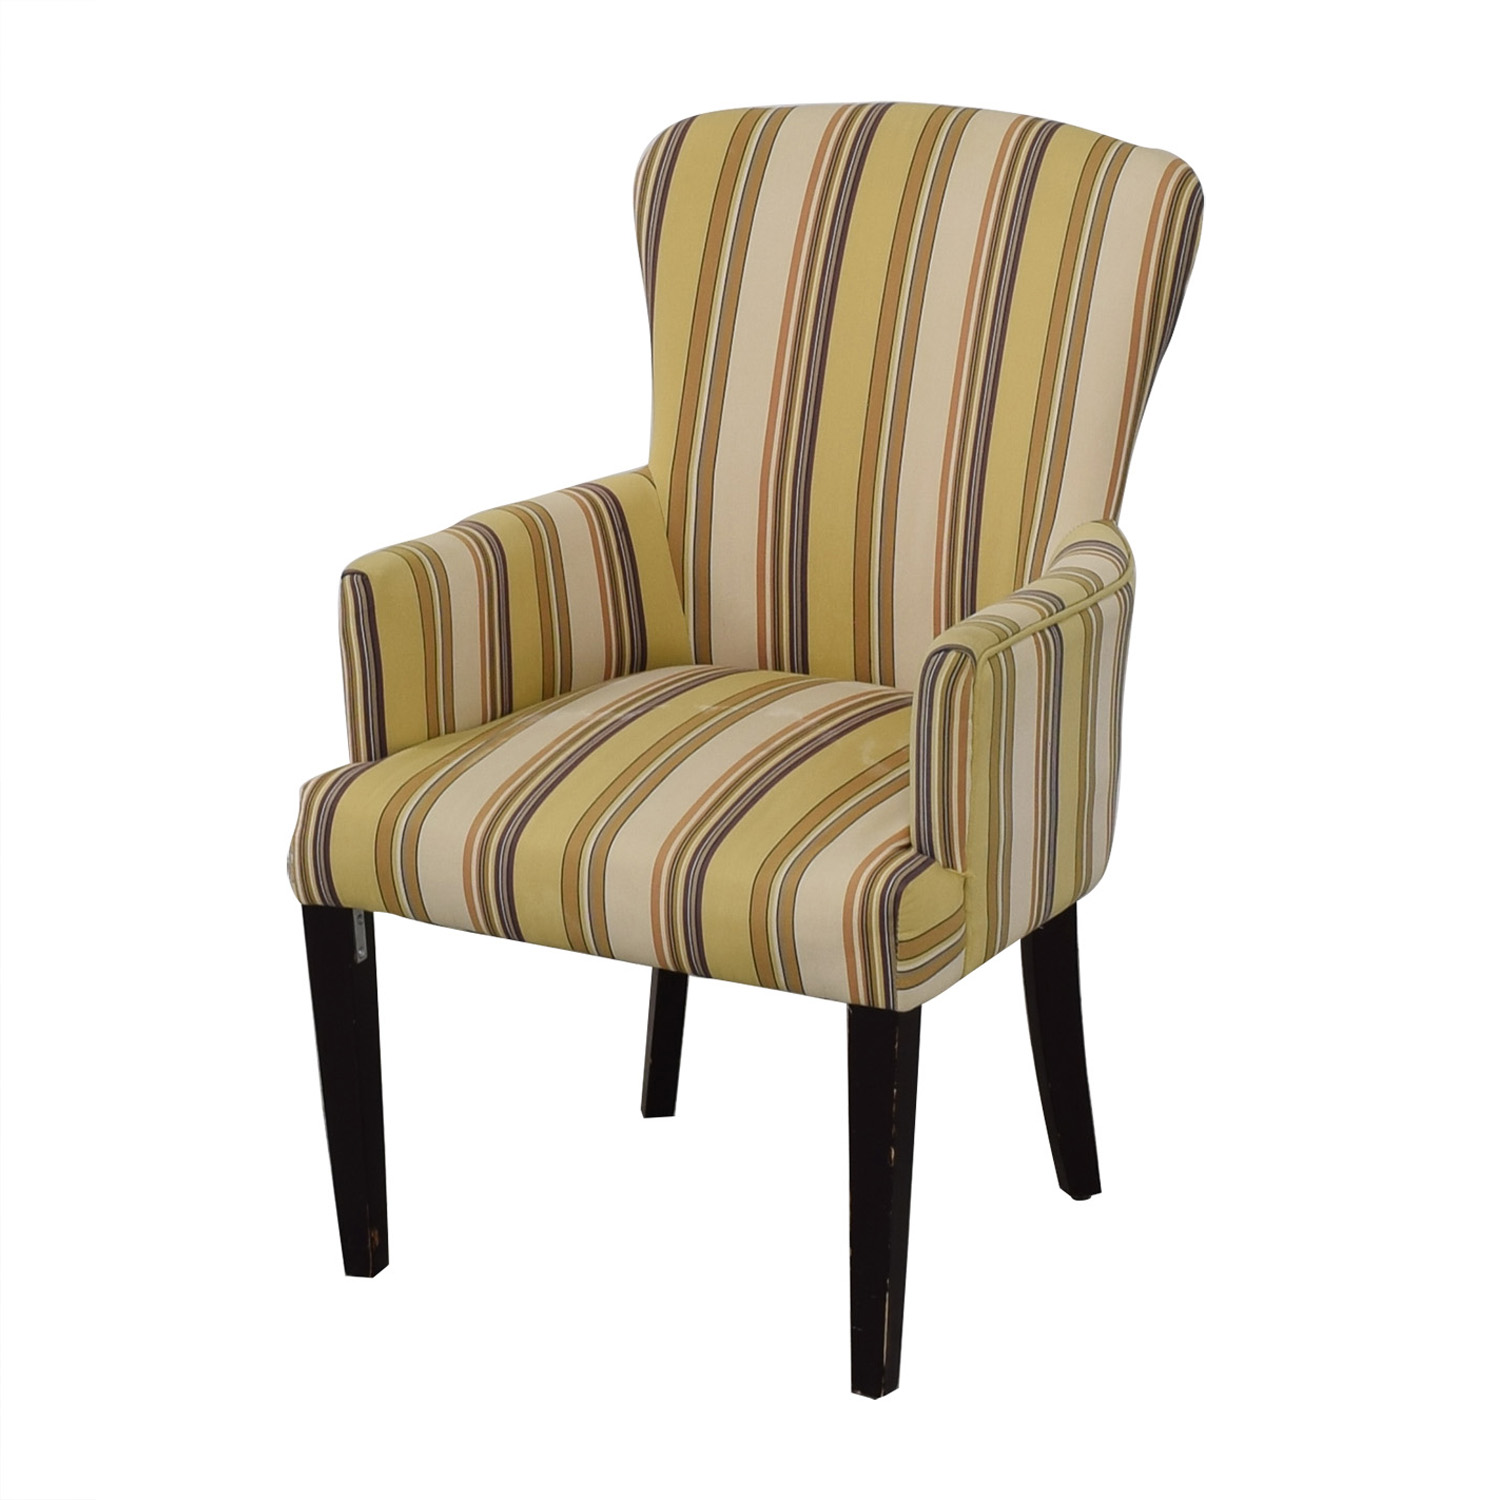 Multi-Colored Striped Armchair / Chairs